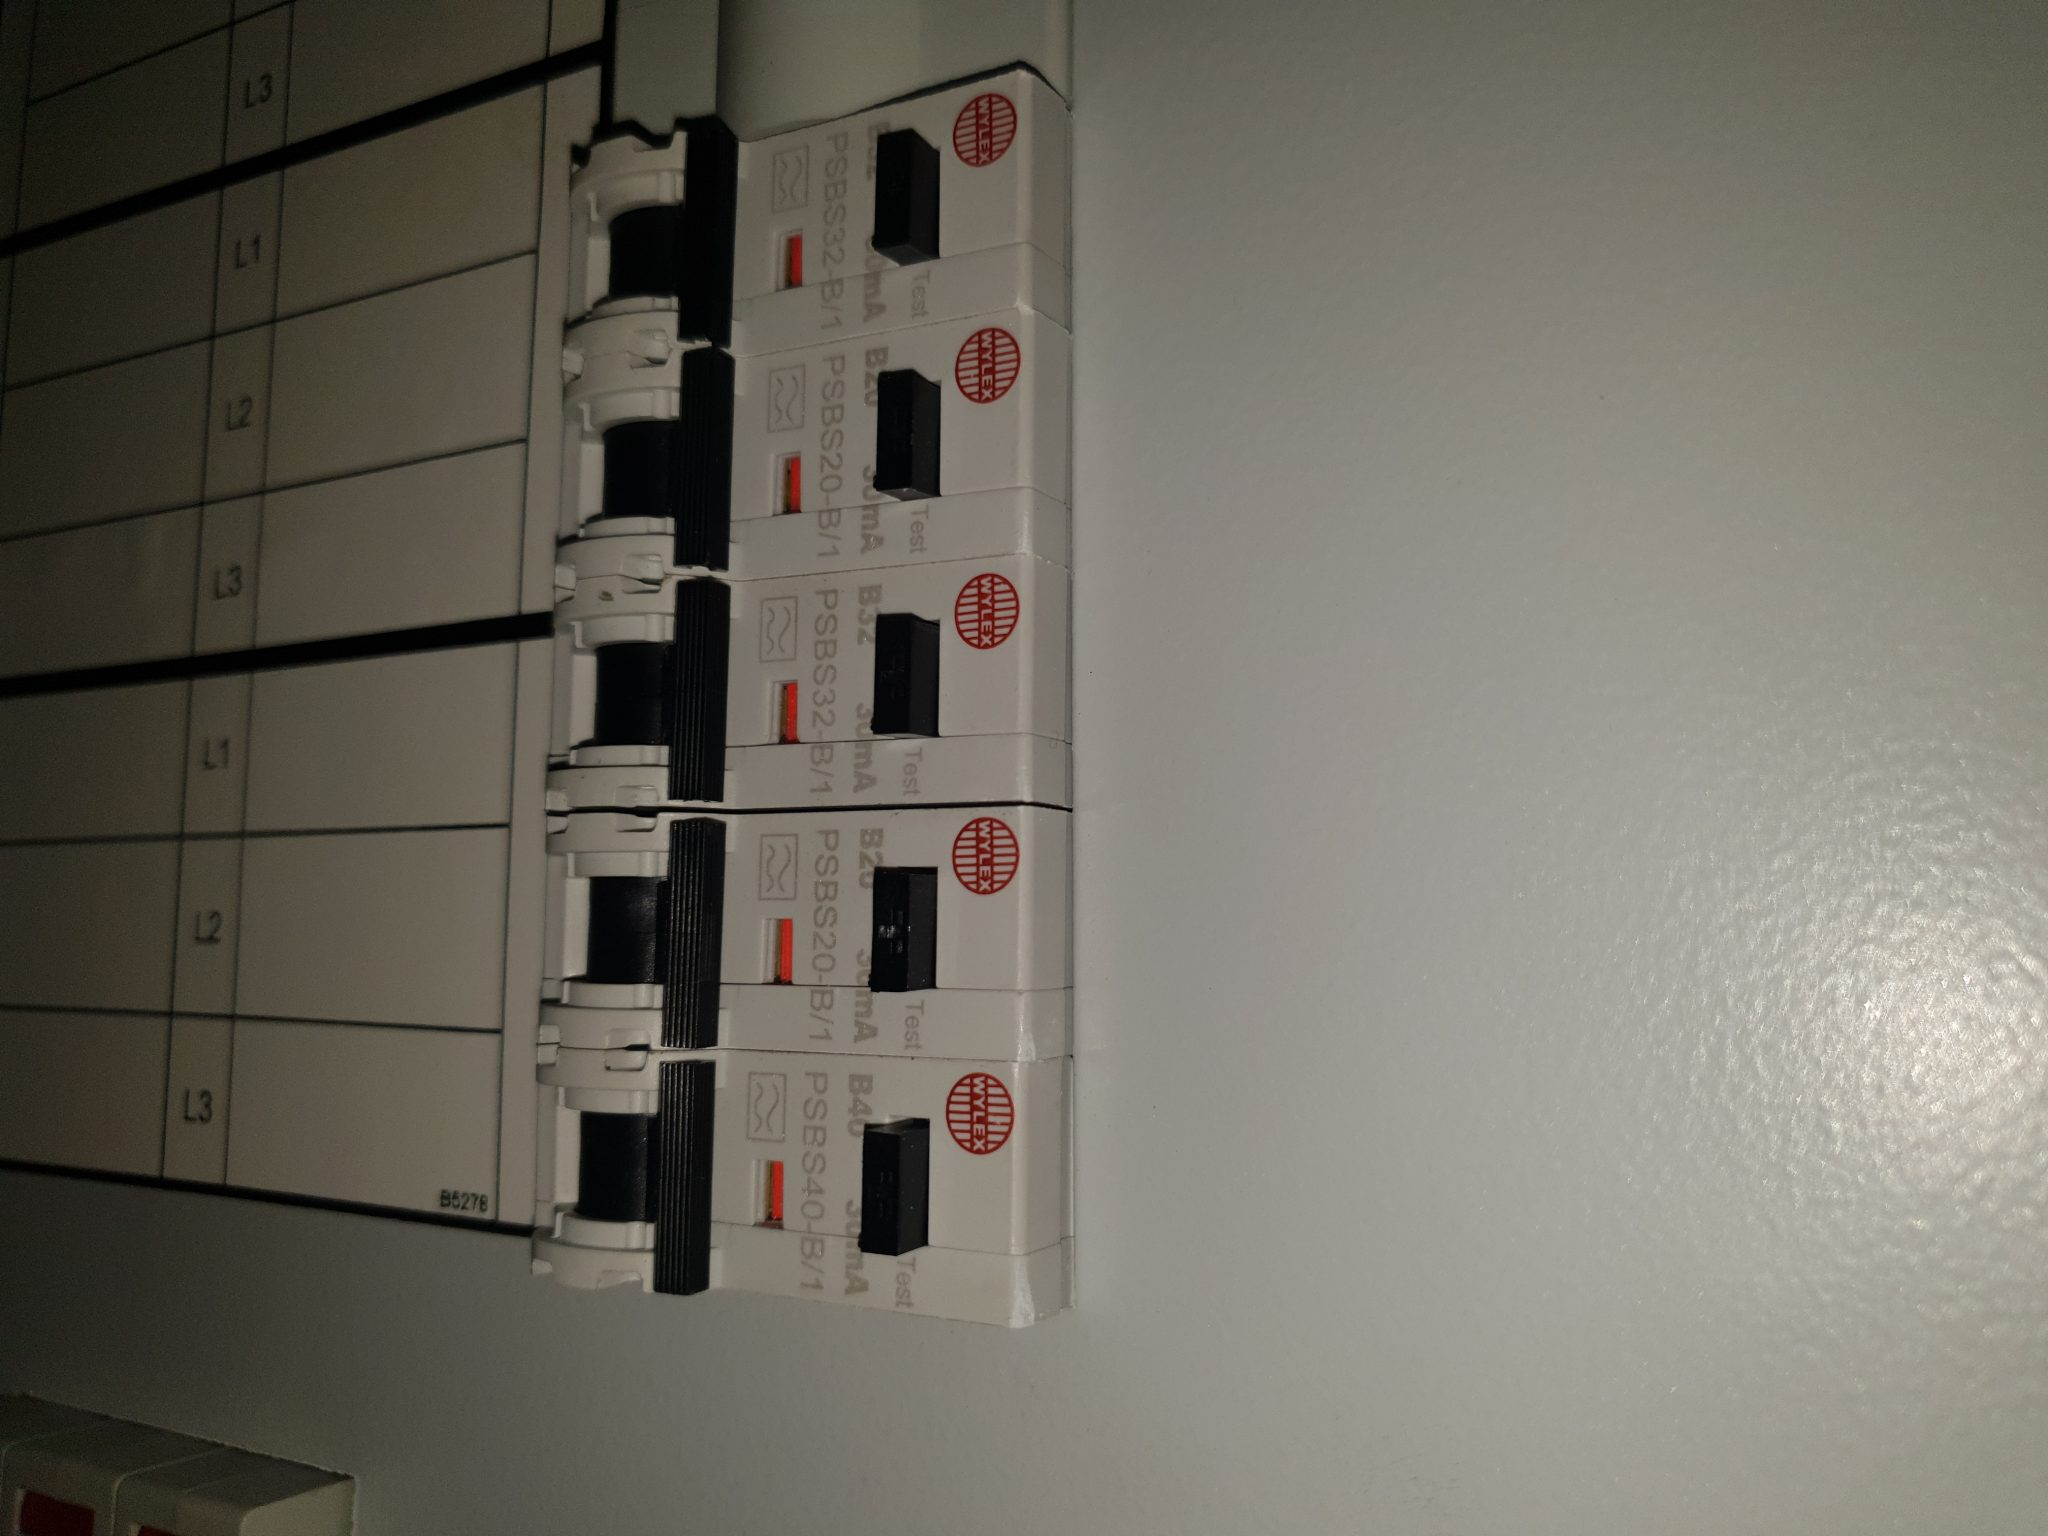 RCD protection provided by RCBO